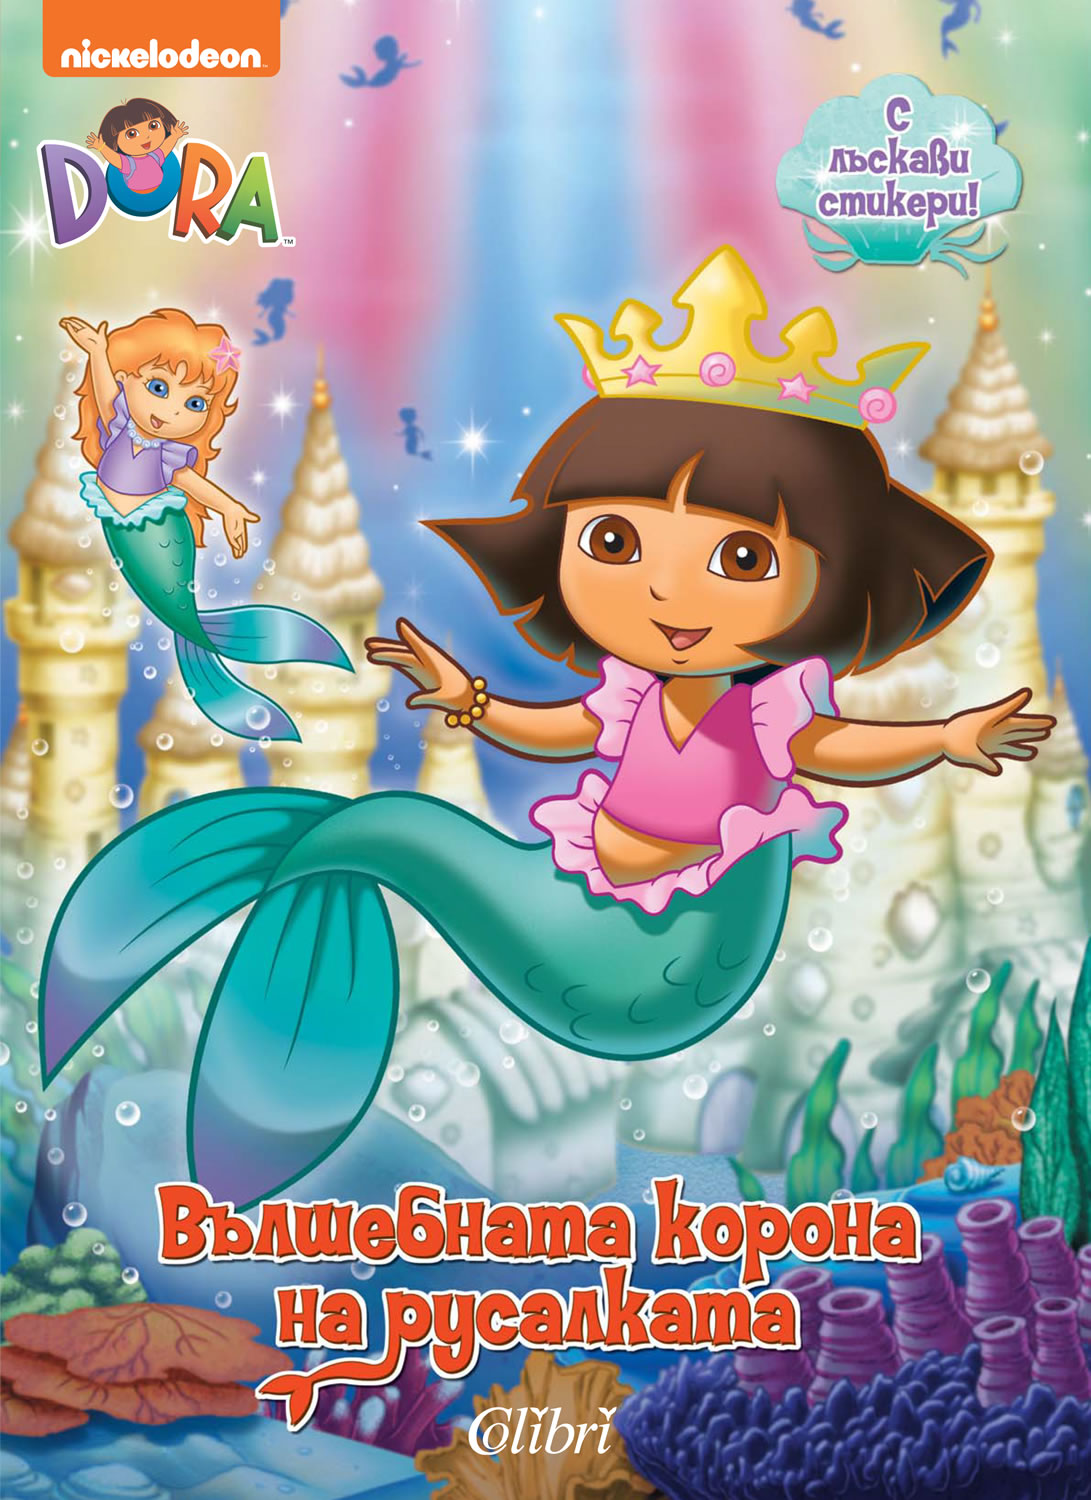 The Magical Mermaid Crown From Dora The Explorer Book Info Annotation Details Colibri Publishers Mermaid has black eyes and crown on her head. the magical mermaid crown from dora the